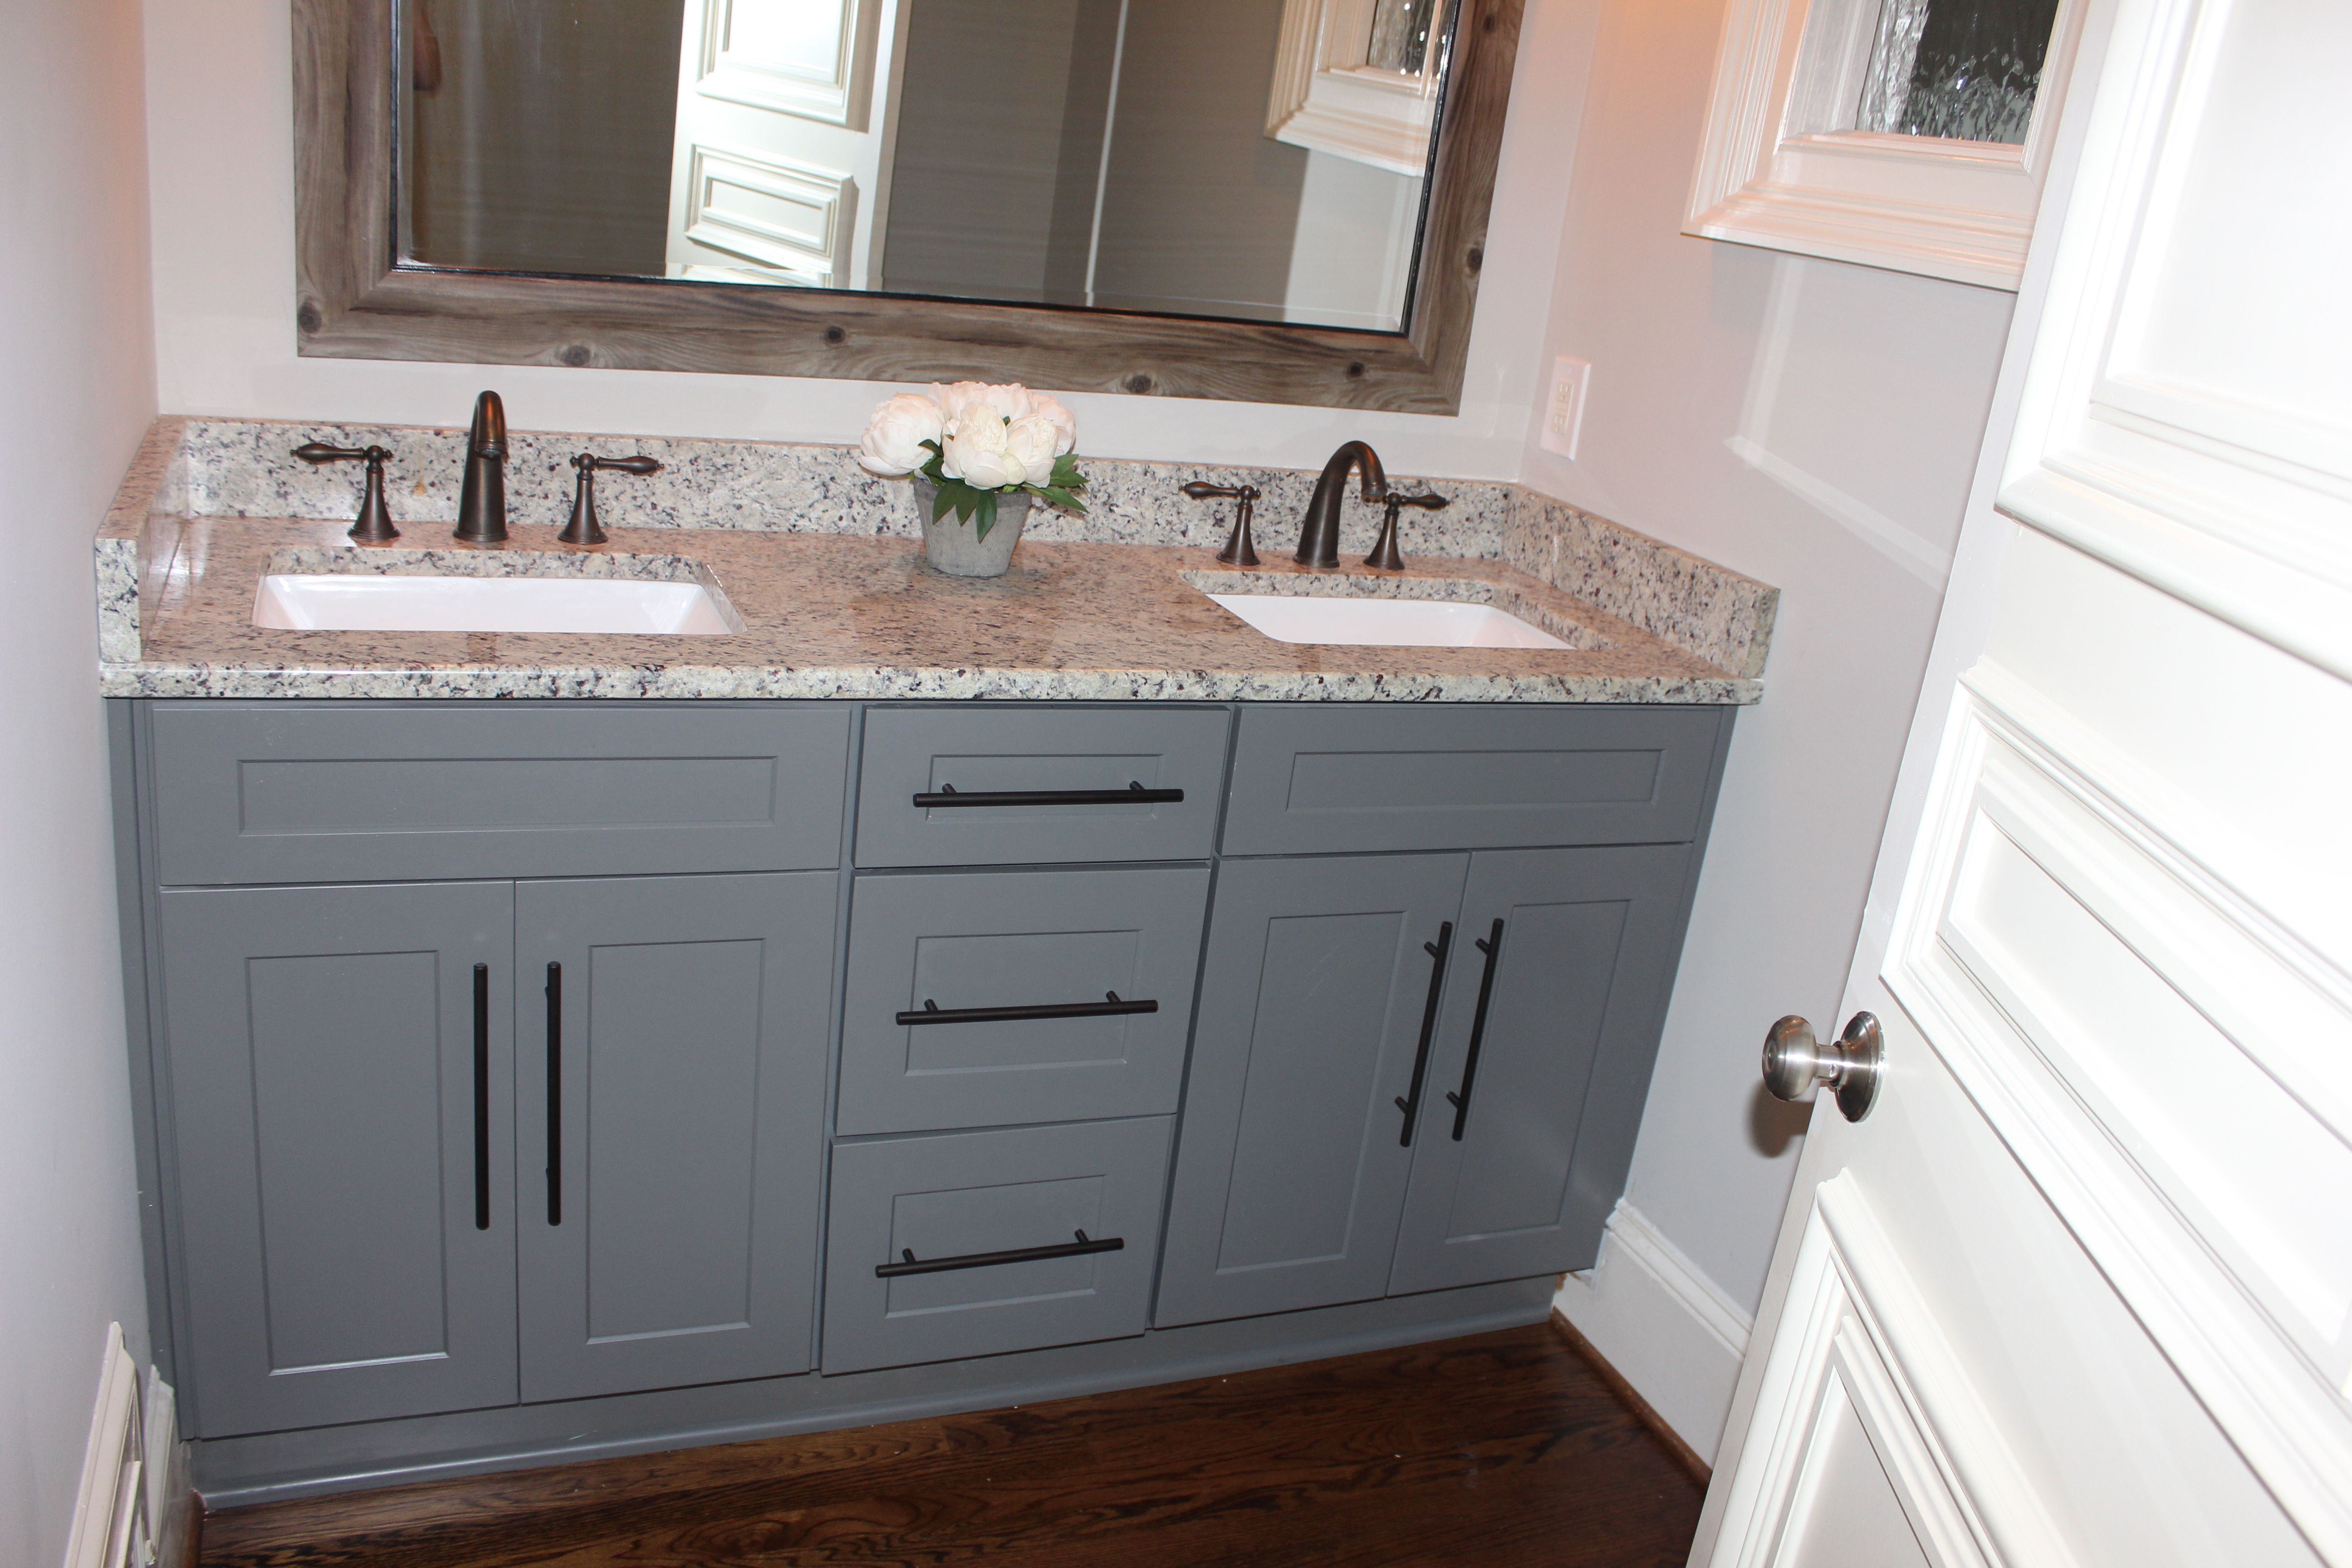 Grey Shaker Cabinets With Oil Rubbed Bronze Pulls And Faucets